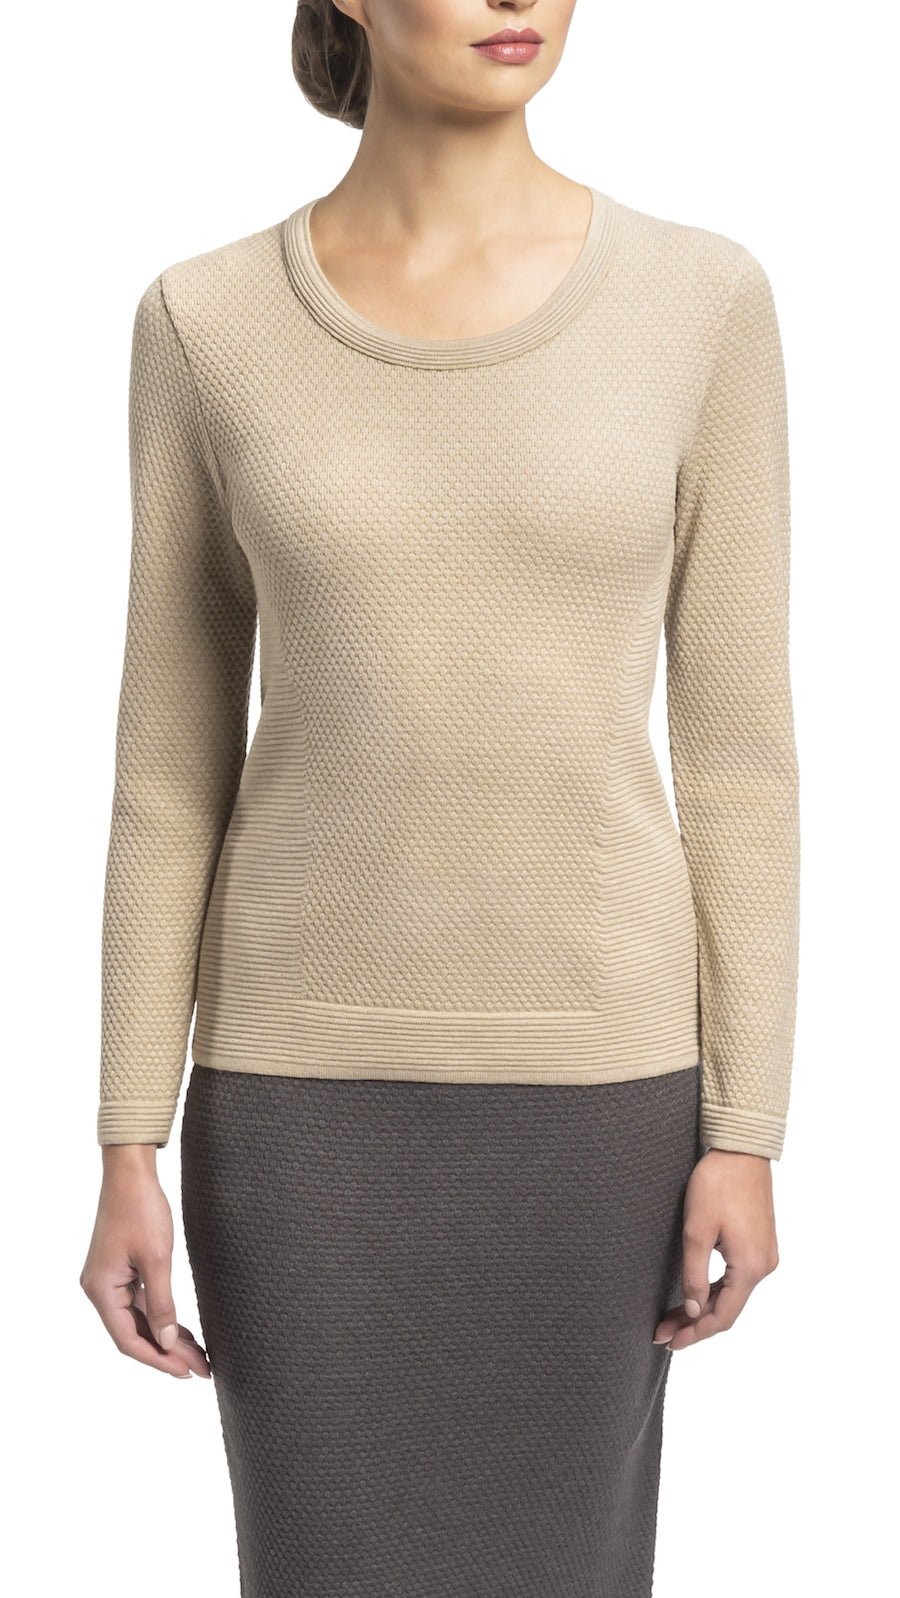 CONTEMPO Helene knitted top, Beige